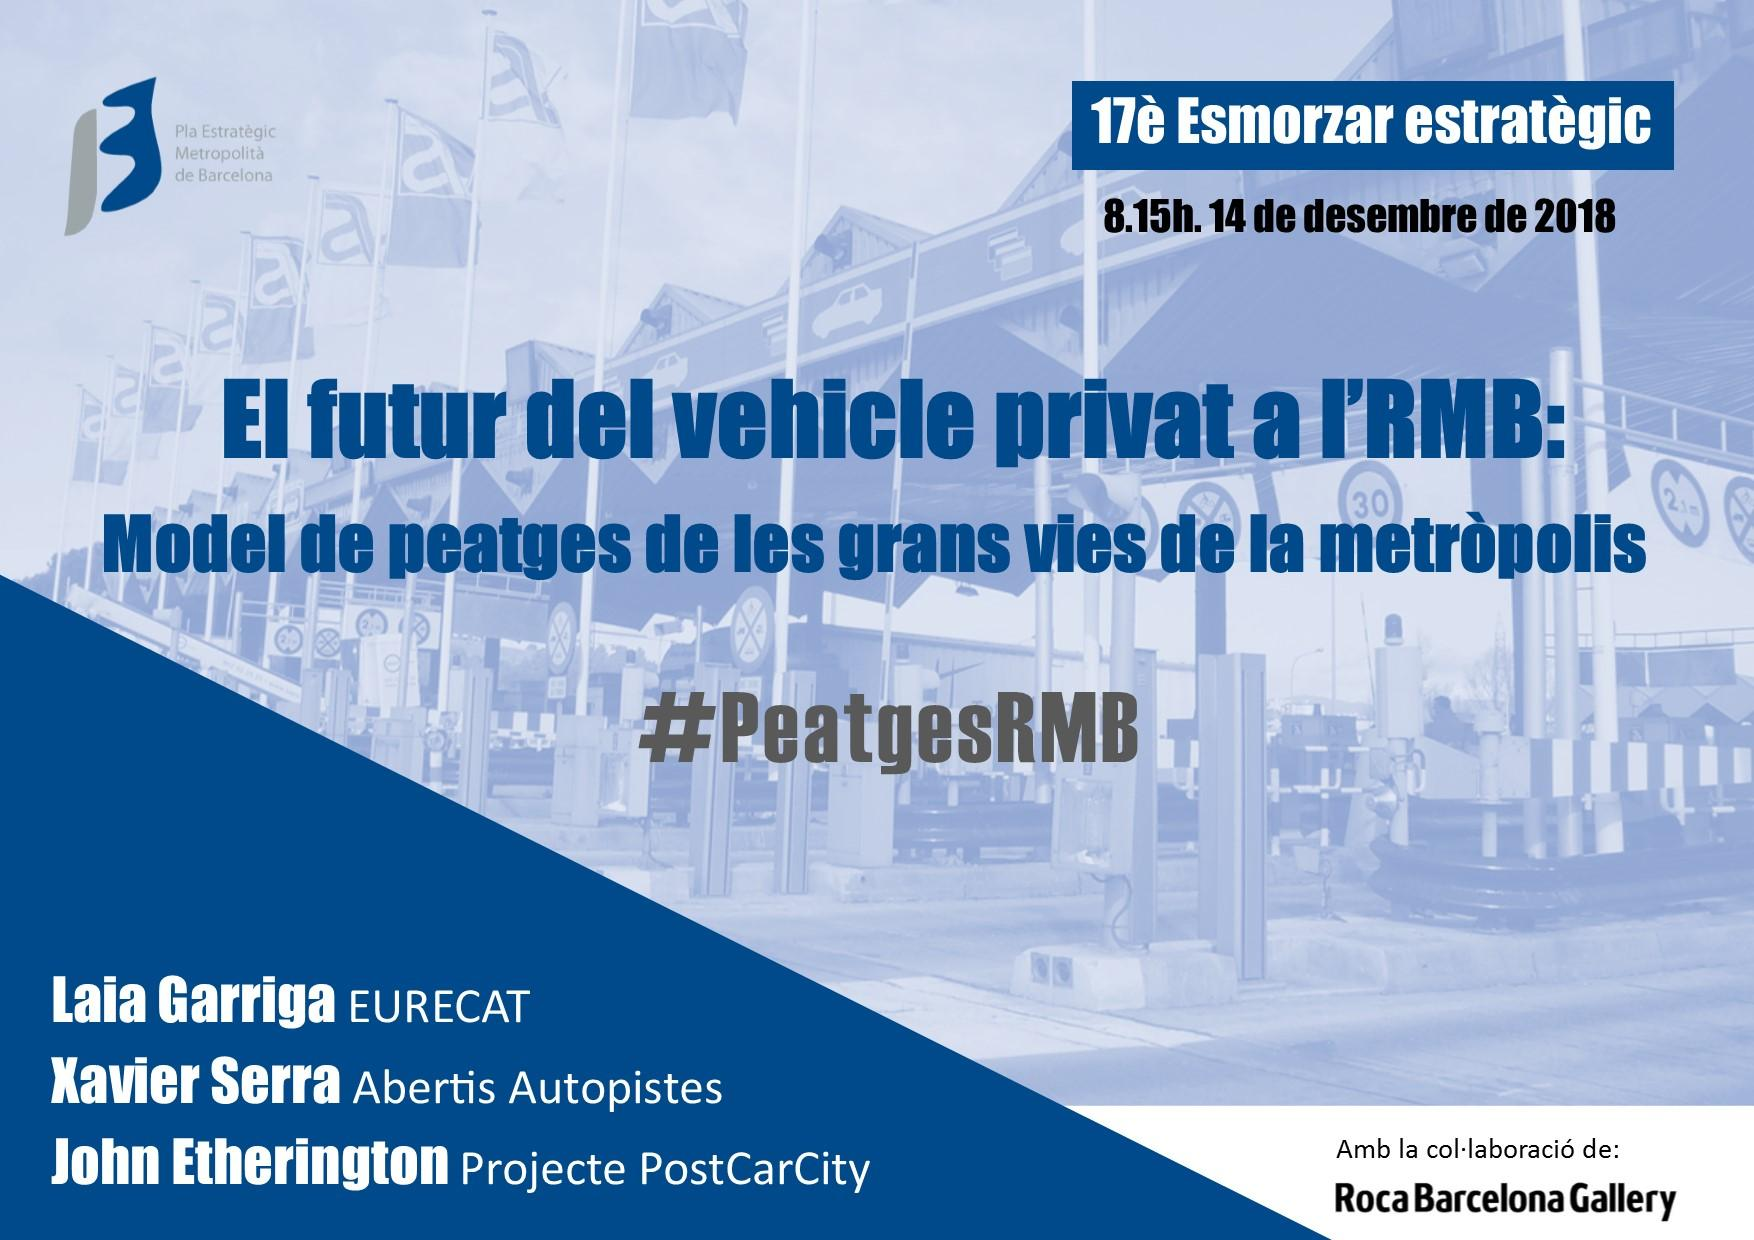 El futur del vehicle privat a l'RMB